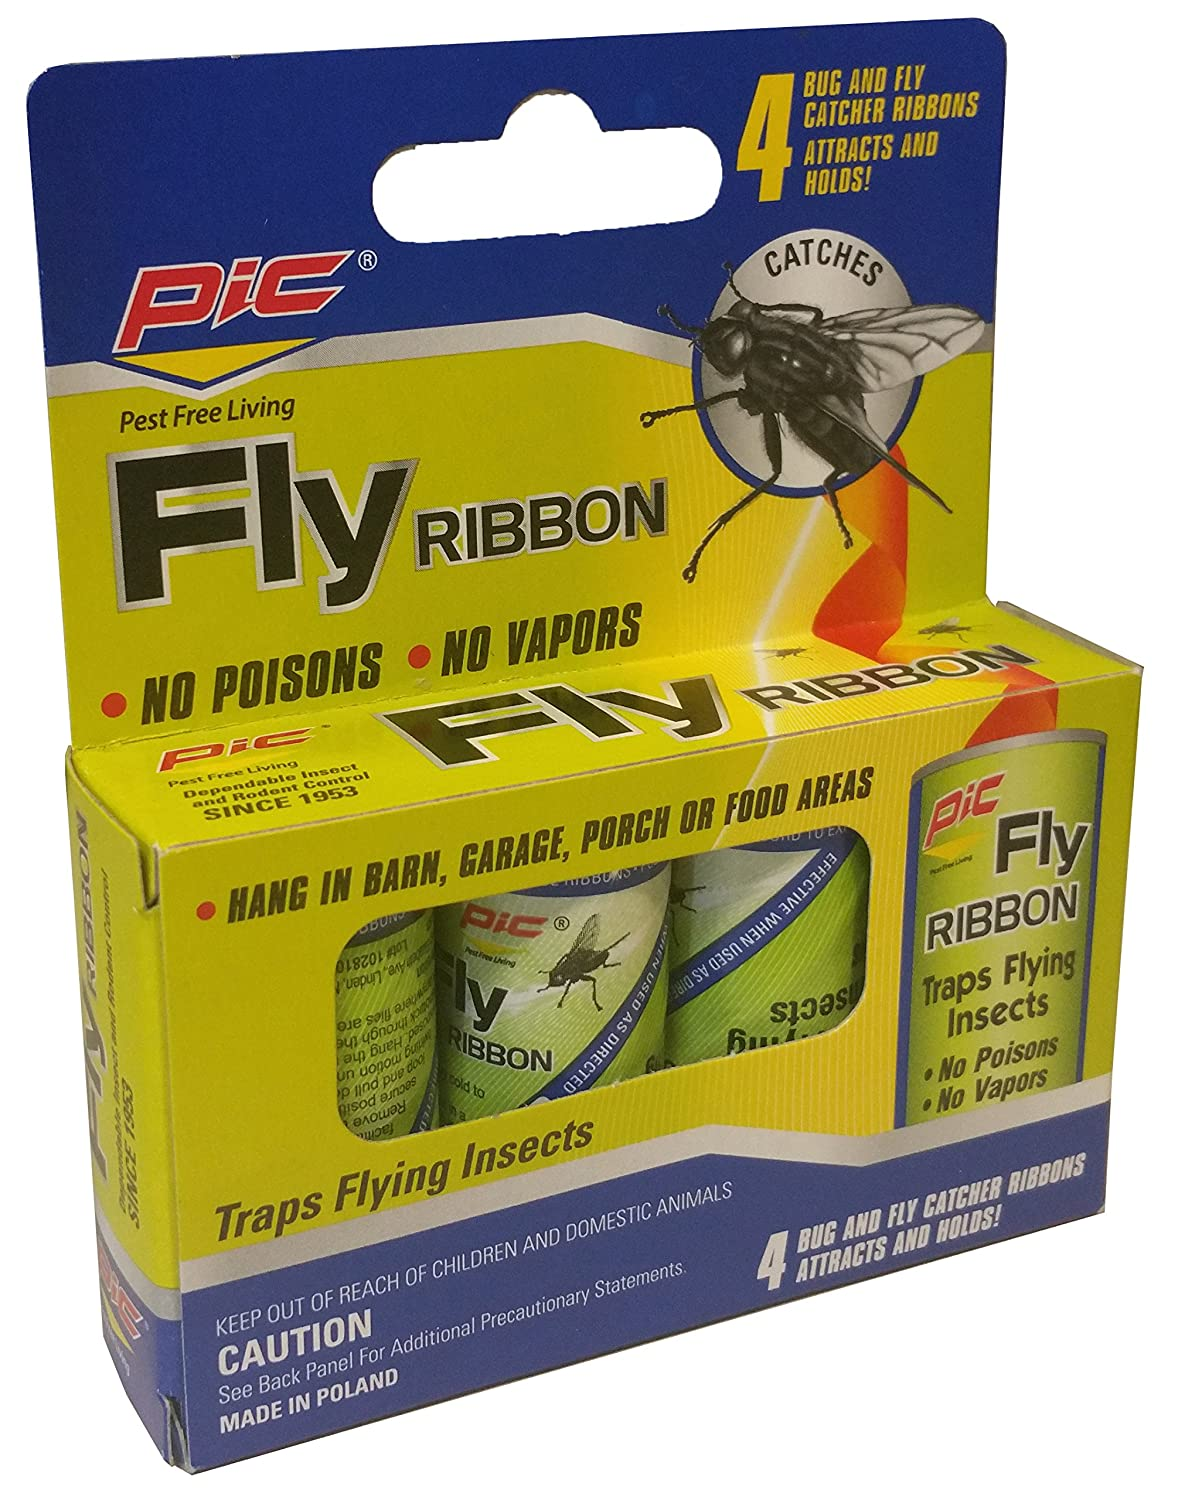 Pic Fly Ribbon Bug Insect Catcher 4 Pack Flytrap Robots Can Hunt And Catch Bugs For Meals Traps Garden Outdoor